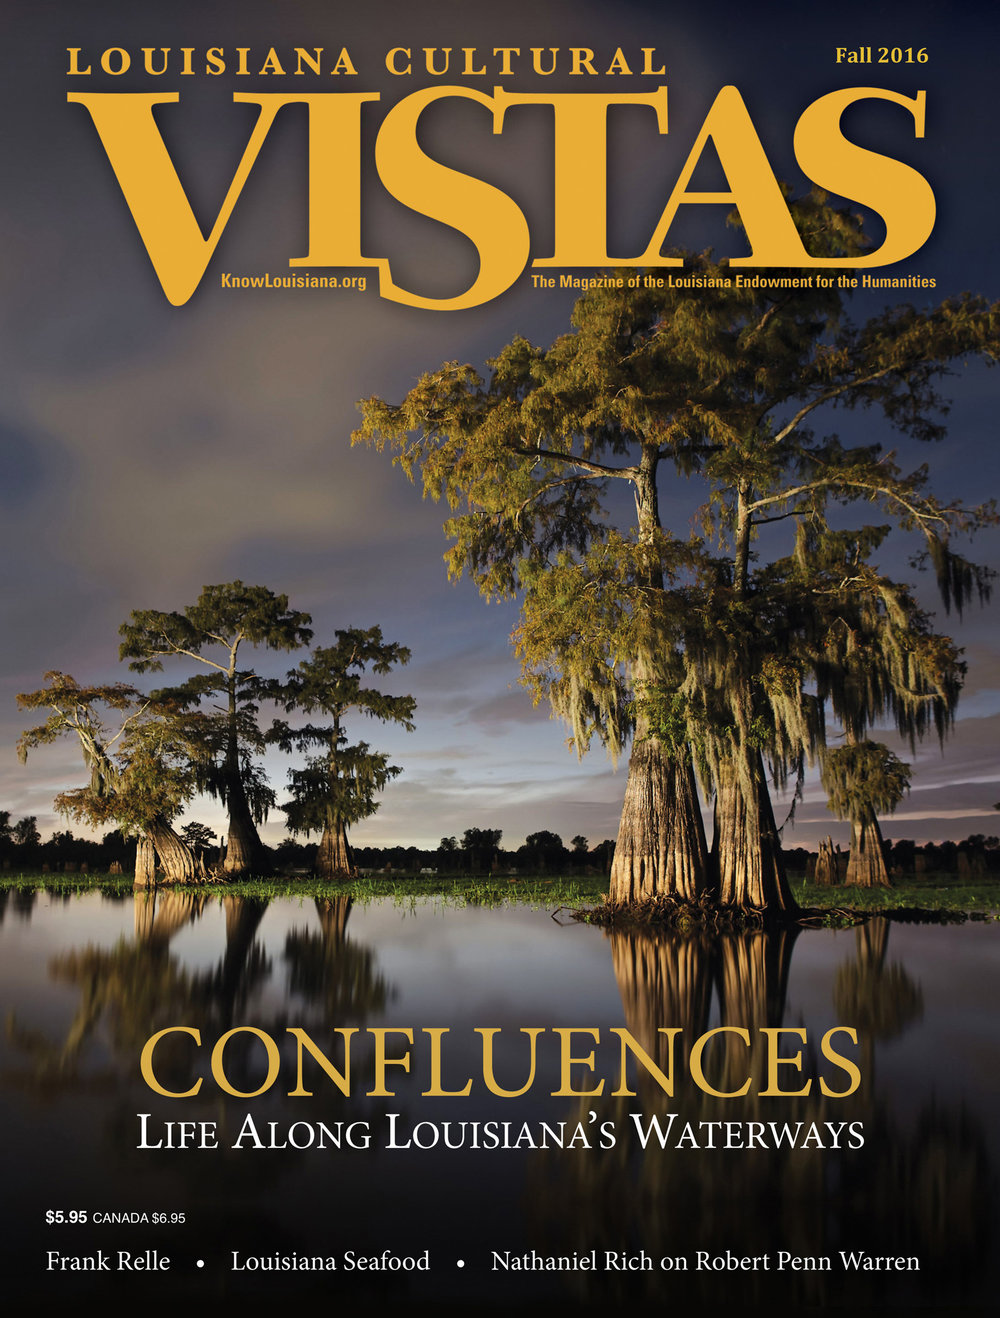 Louisiana Cultural Vistas